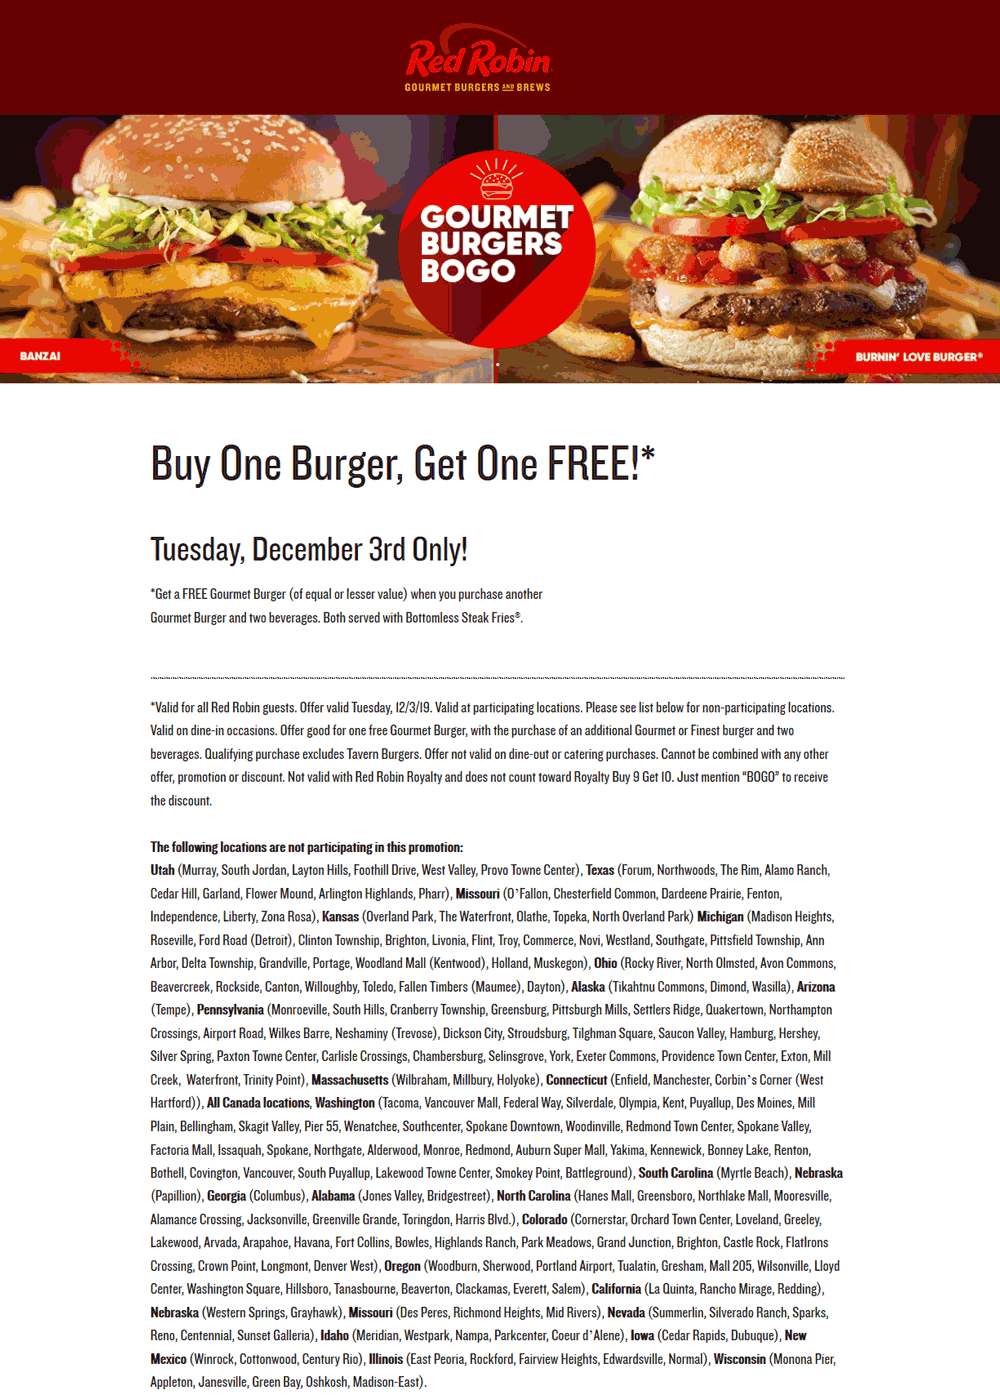 Red Robin Coupon January 2020 Second burger free today at Red Robin restaurants